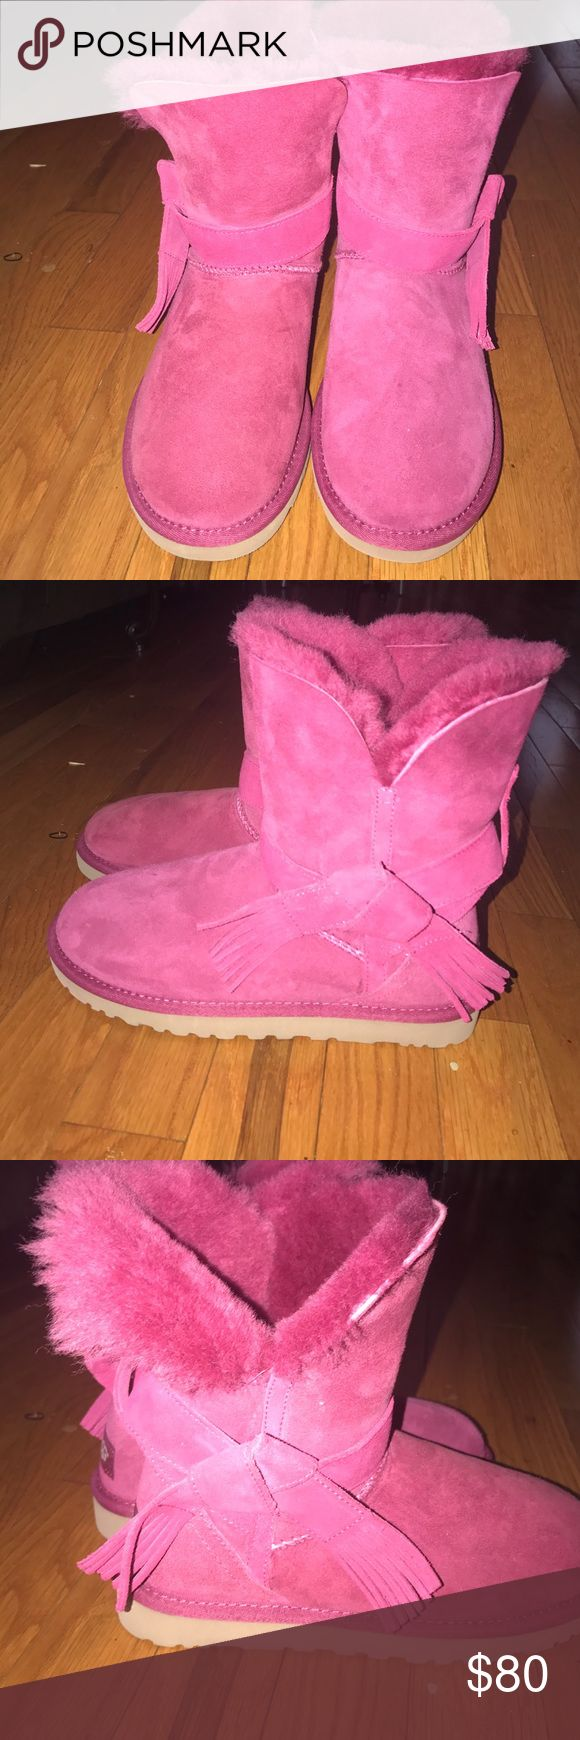 Fushia pink uggs Fuchsia pink Uggs size 5, has no tag but has a sticker on the bottom brand new and unused UGG Shoes Dress Shoes